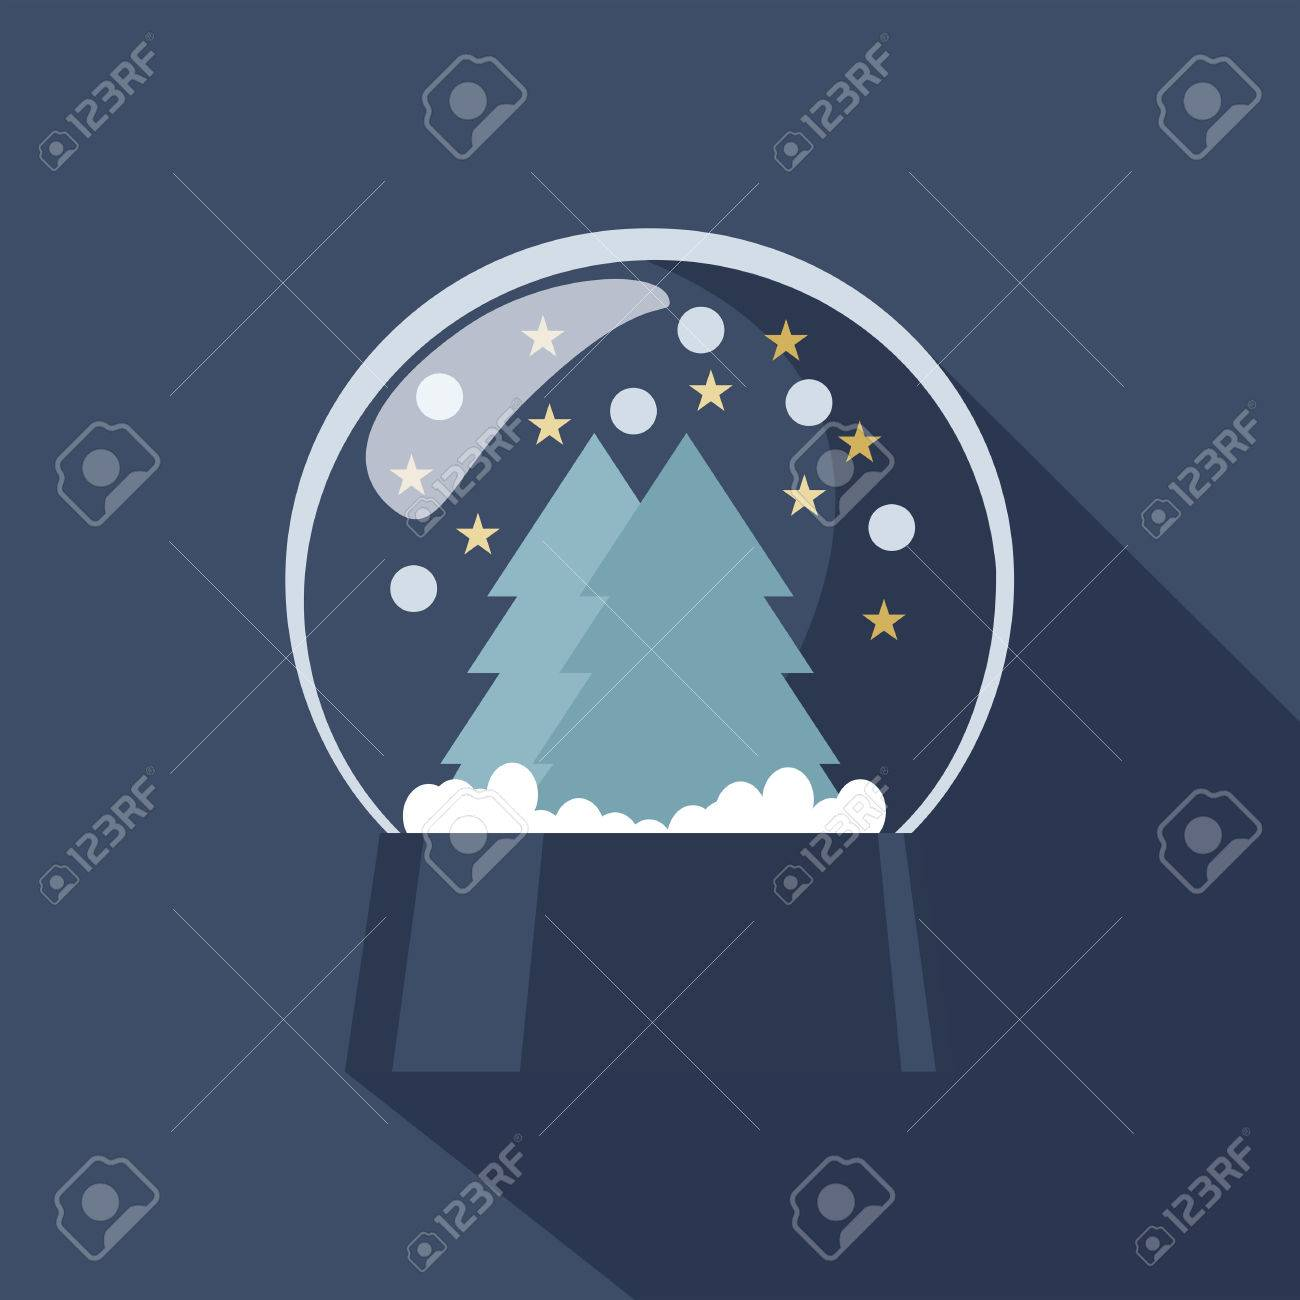 Spherical Snow Globe icon depicting Christmas and New Year with sparkling snowflakes suspended above forest trees on a cold blue winter background Stock Vector - 48104779